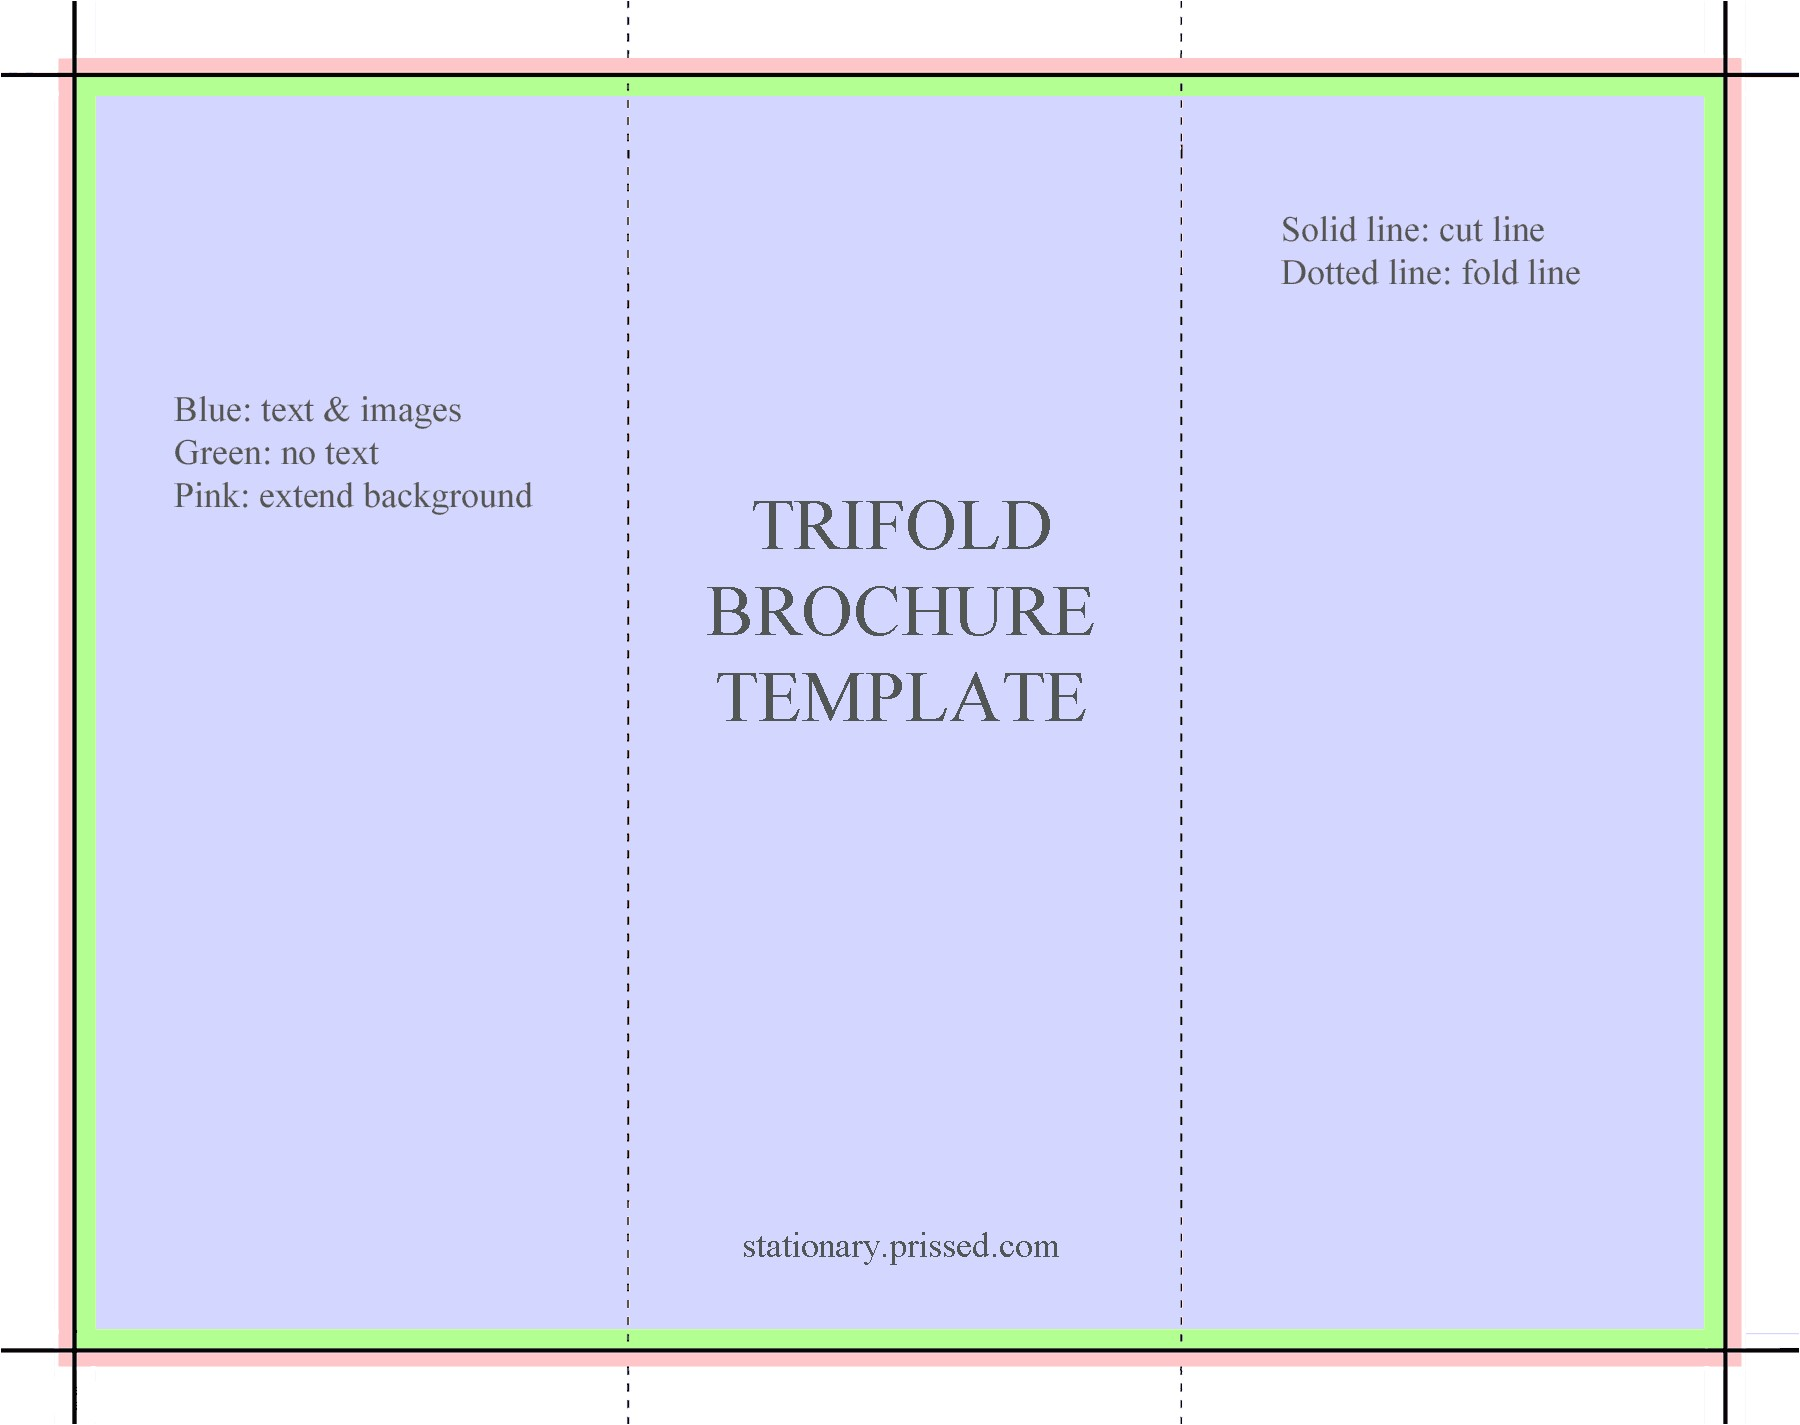 Free Tri-fold Brochure Template Downloads Brochure Templates Free Brochure Template Flyer